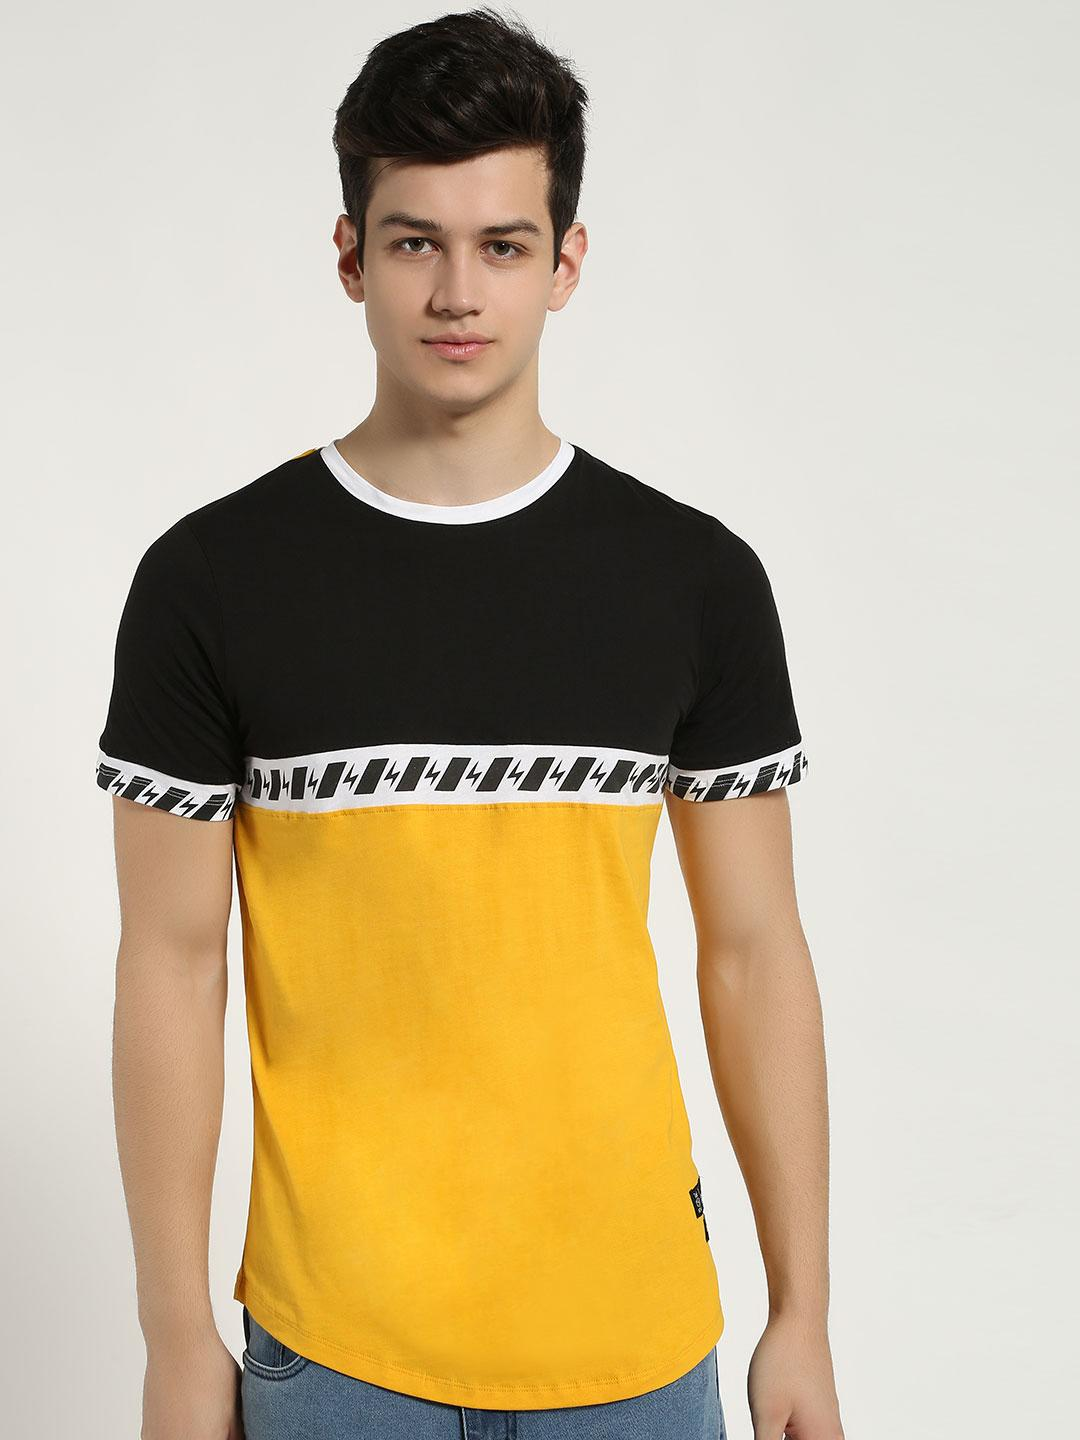 Kultprit Yellow Colour Block Printed Tape T-Shirt 1